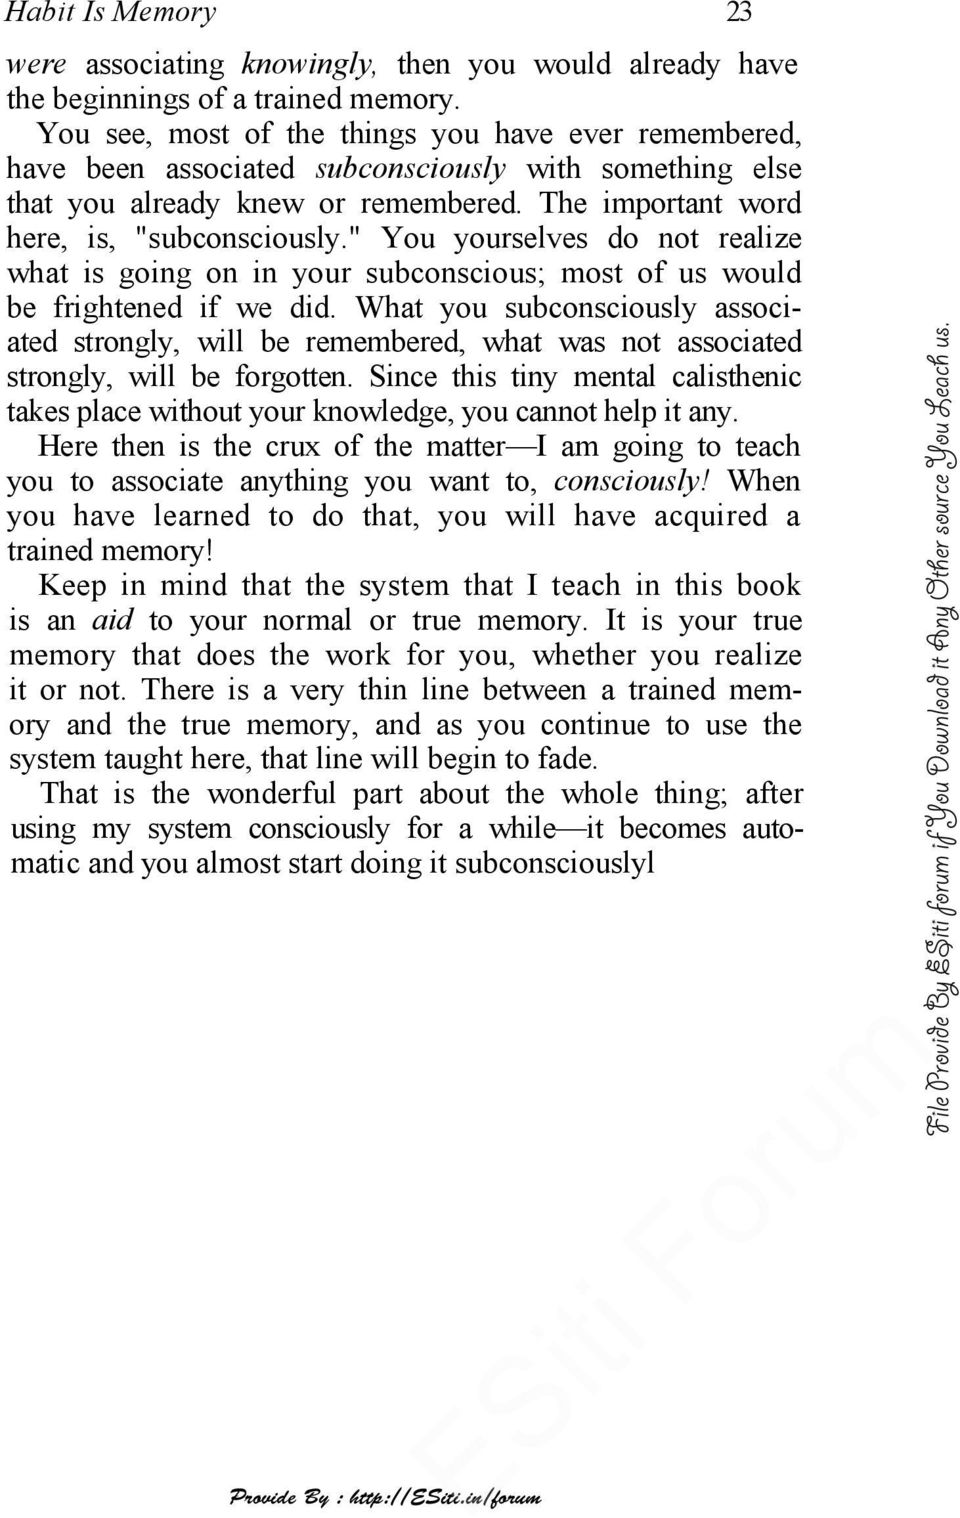 """ You yourselves do not realize what is going on in your subconscious; most of us would be frightened if we did."